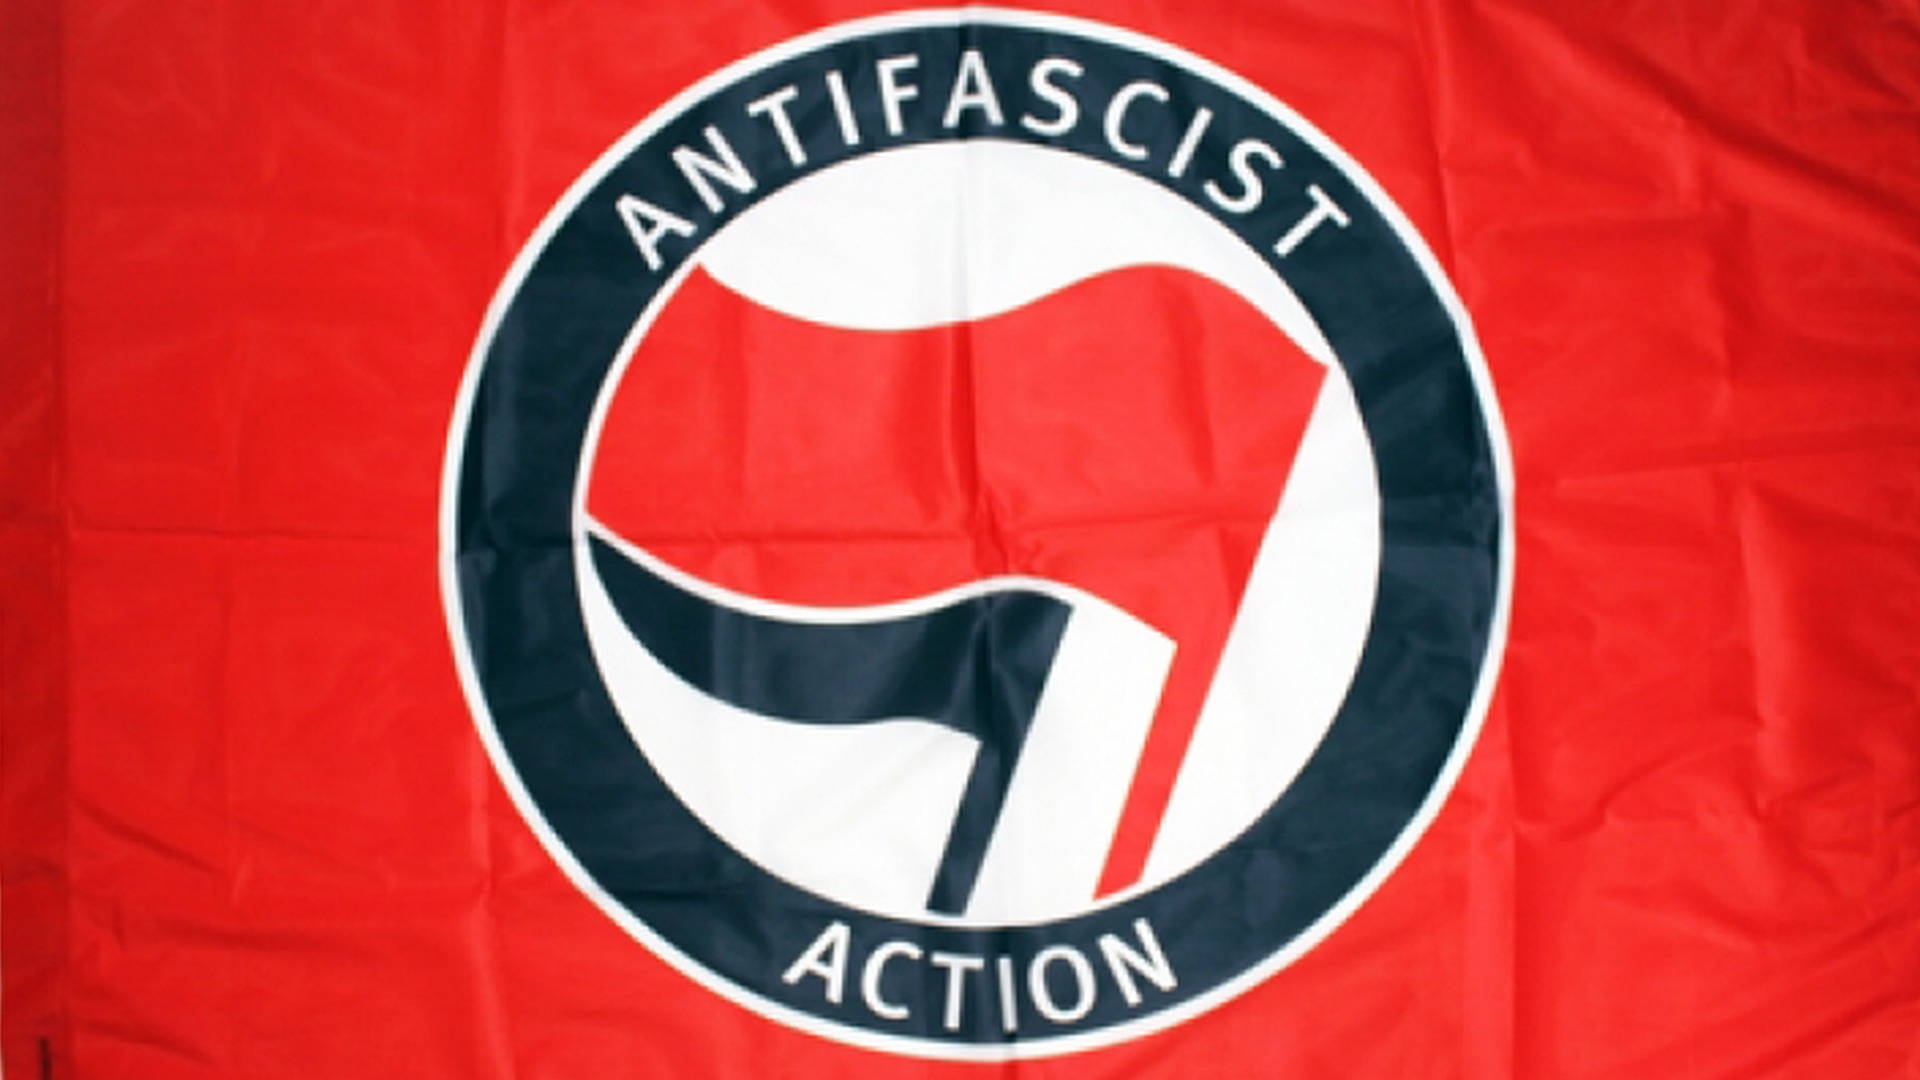 Antifa a look at the anti fascist movement confronting white antifa a look at the anti fascist movement confronting white supremacists in the streets democracy now biocorpaavc Images